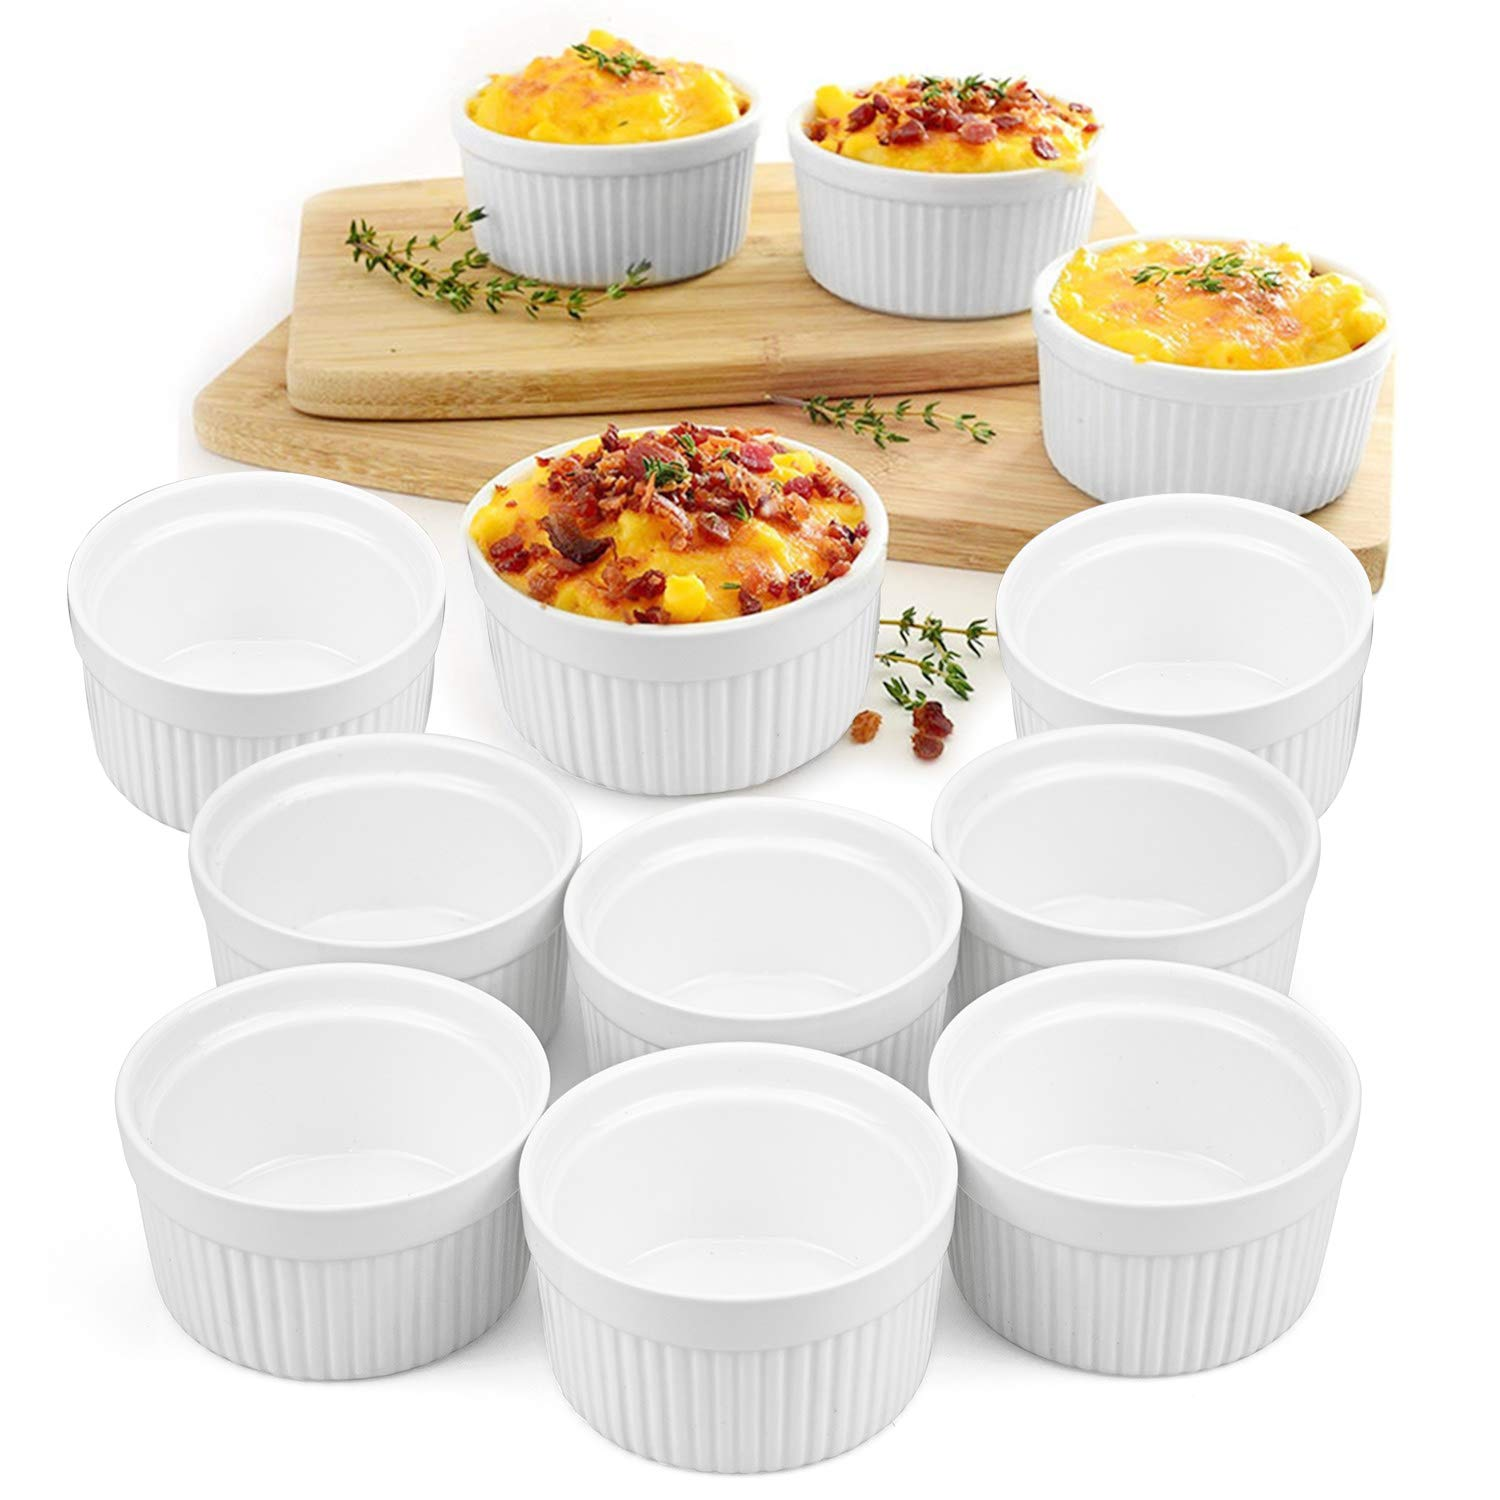 Foraineam Set of 12 Pcs Ramekins Bakeware Set, 6 oz. White Porcelain Souffle Dishes Dessert Custard Baking Cups for Baking, Cooking, Serving and More by Foraineam